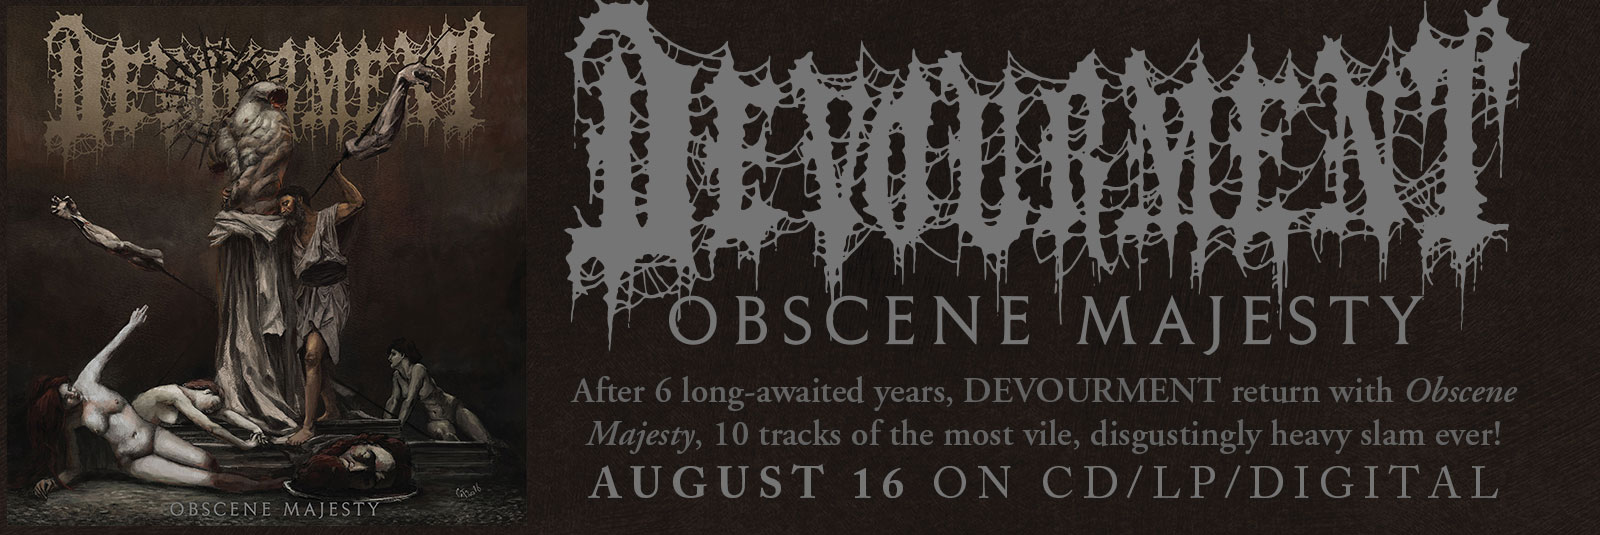 devourment-obscene-majesty-brutal-death-metal-relapse-august-16